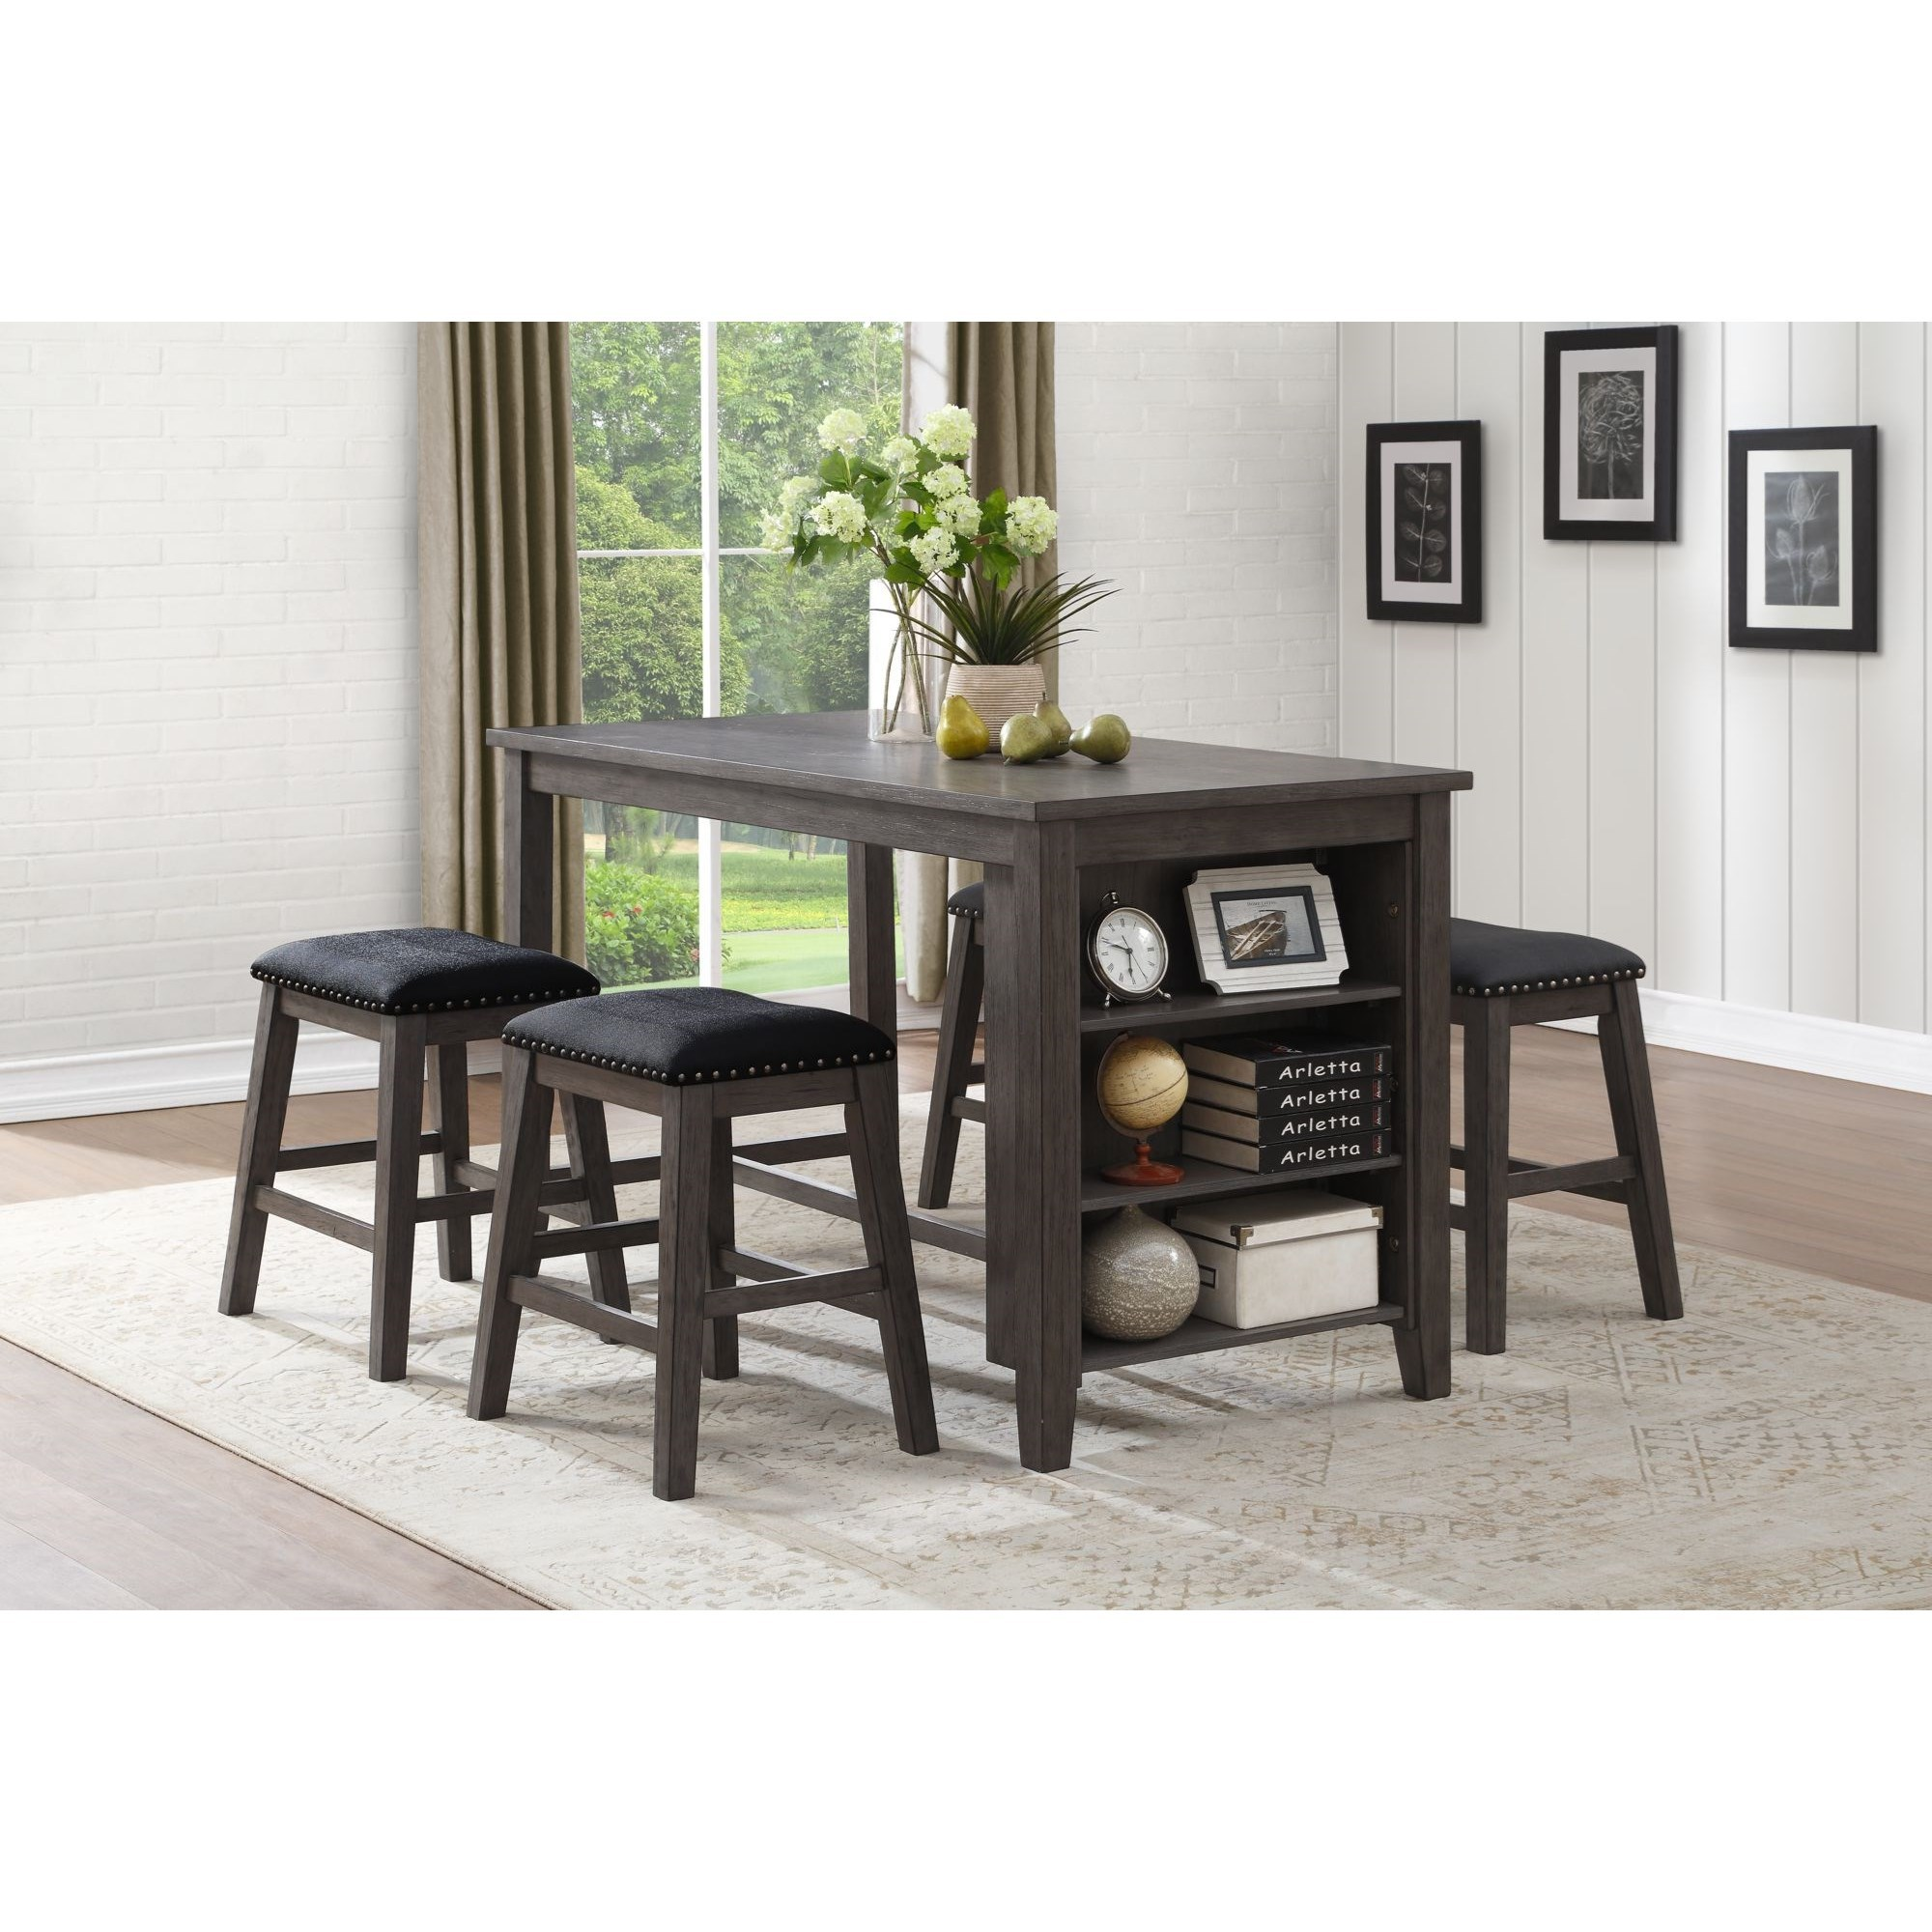 5603 Counter Height Table and Chair Set by Homelegance at Simply Home by Lindy's